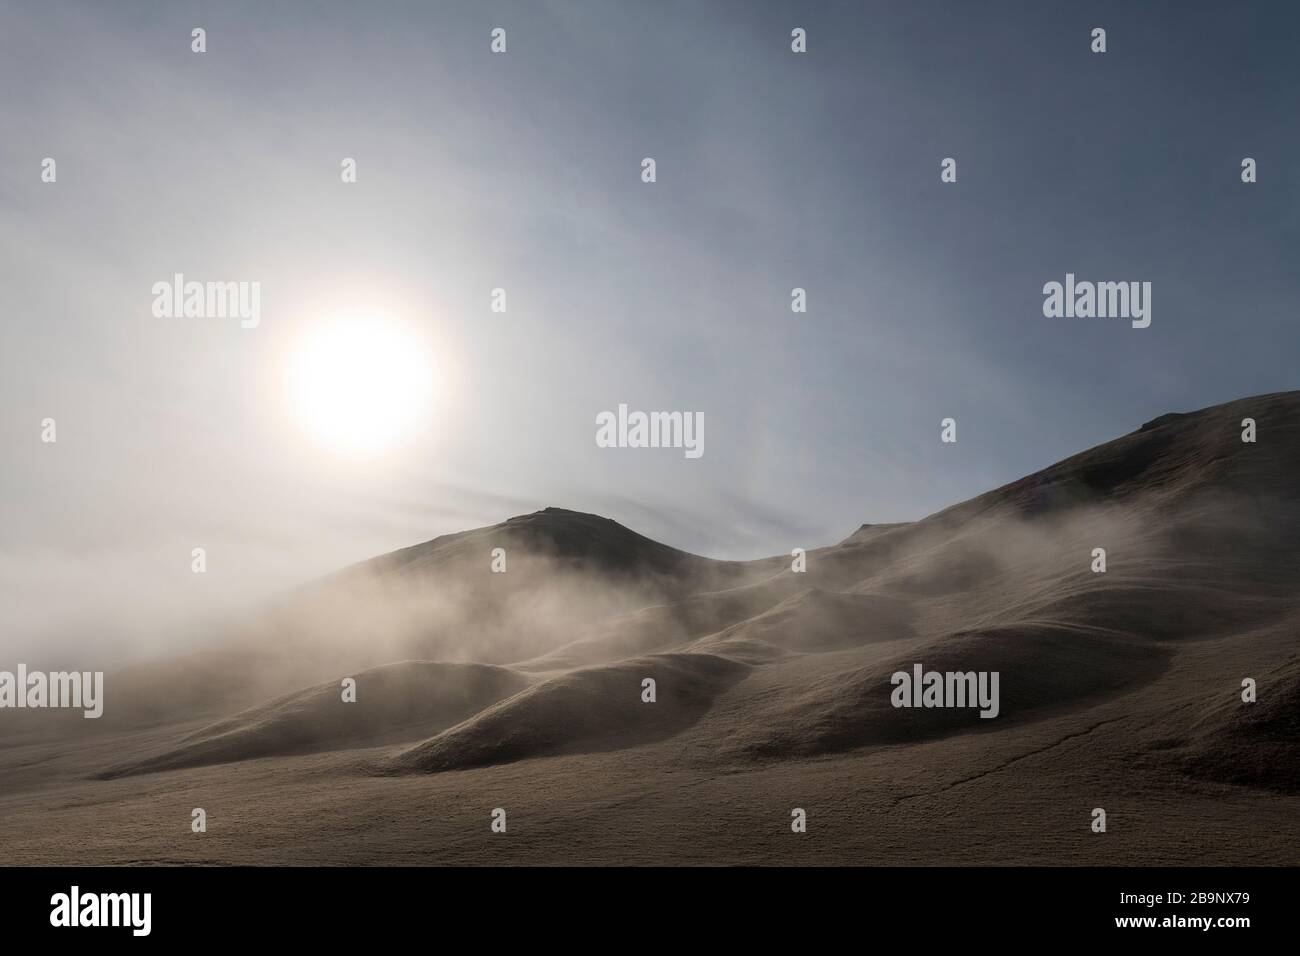 early morning landscapes in the Ak-Sai valley heading to the Kol Suu lake in Kyrgyzstan Stock Photo